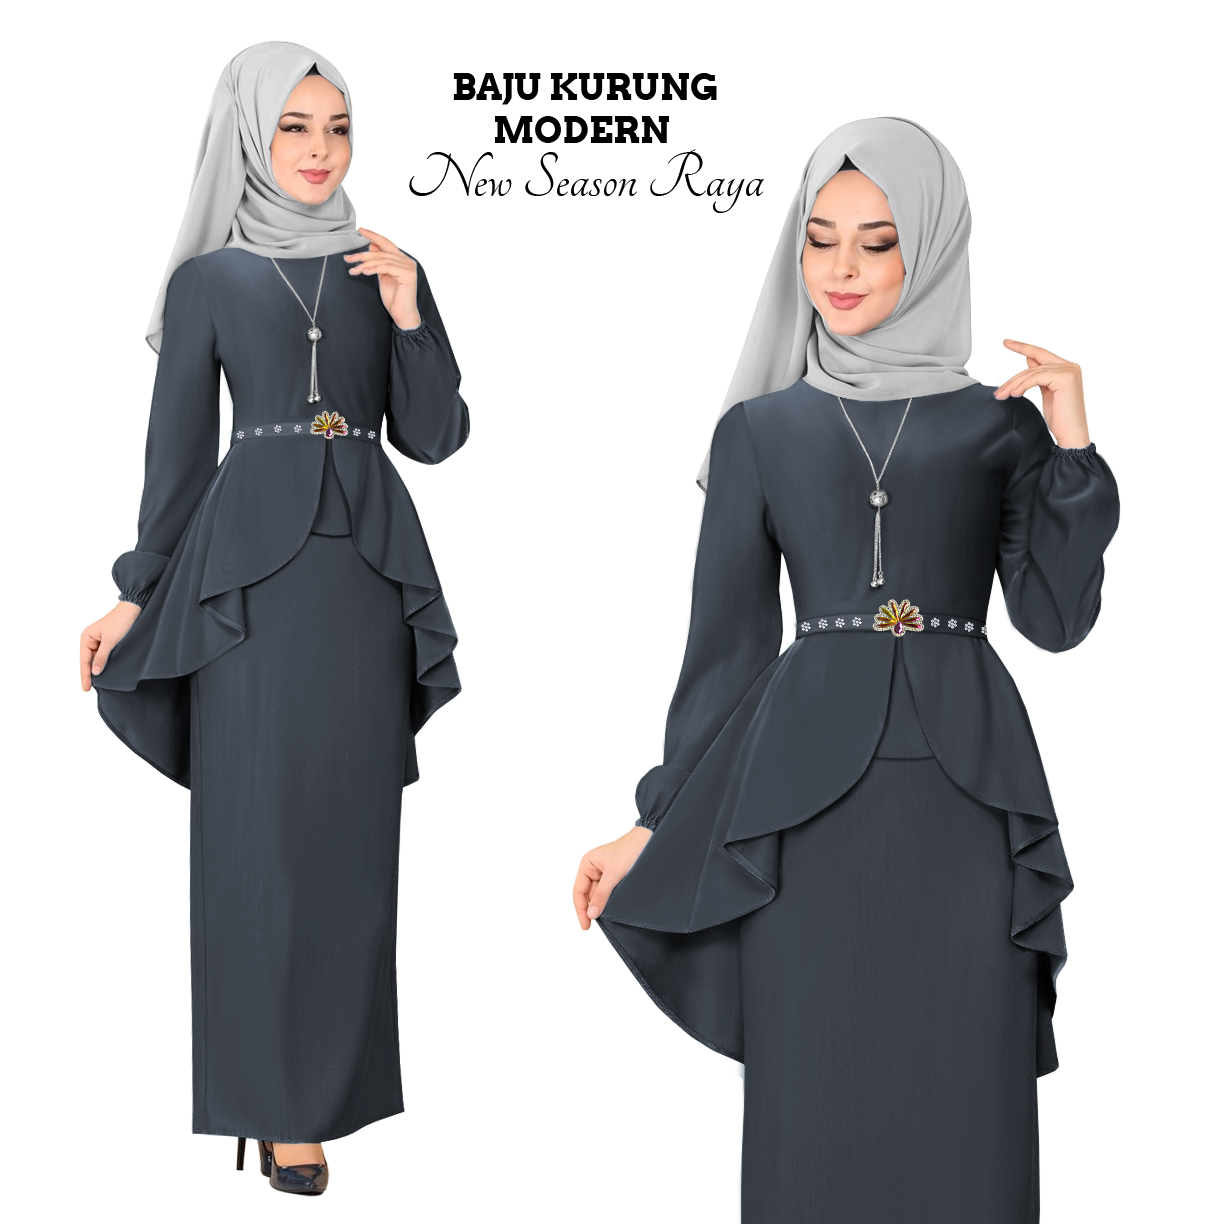 Harga KM Fashion Baju Kurung Modern New Season Baju Raya ( Hot & Trendy ) ( Ready Stock ) Terbaik